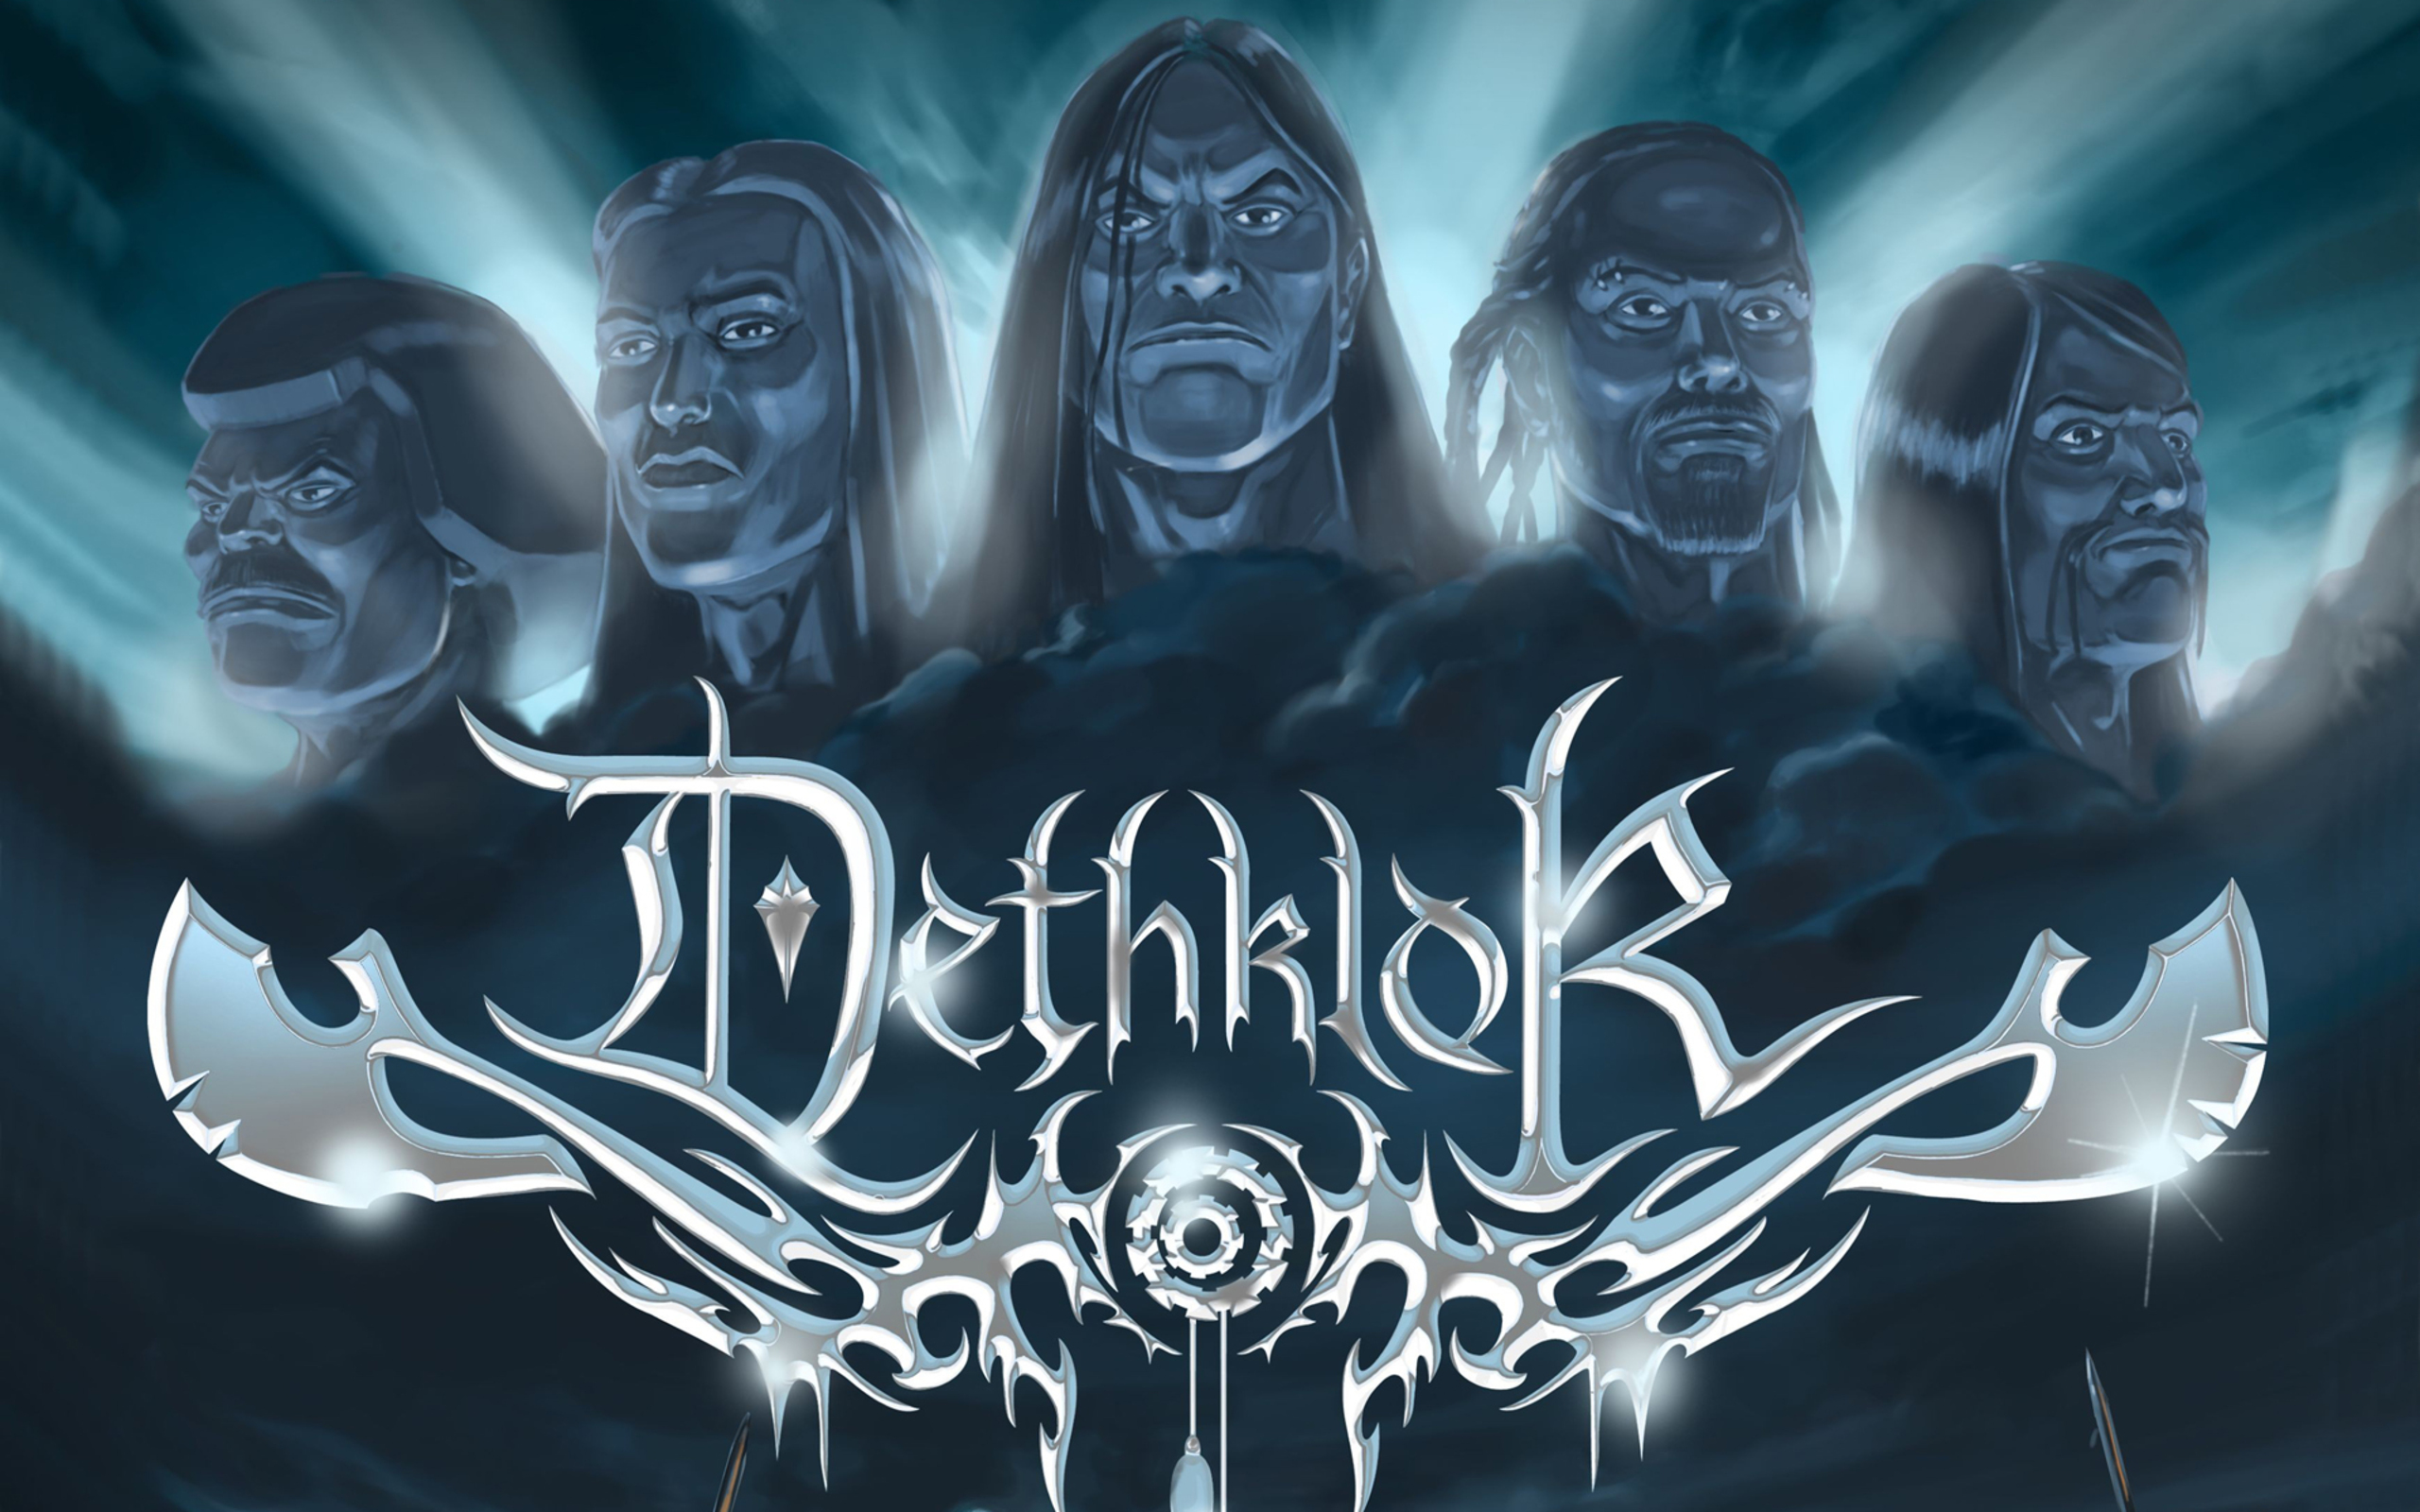 Download hd 2560x1600 Dethklok desktop background ID:174780 for free